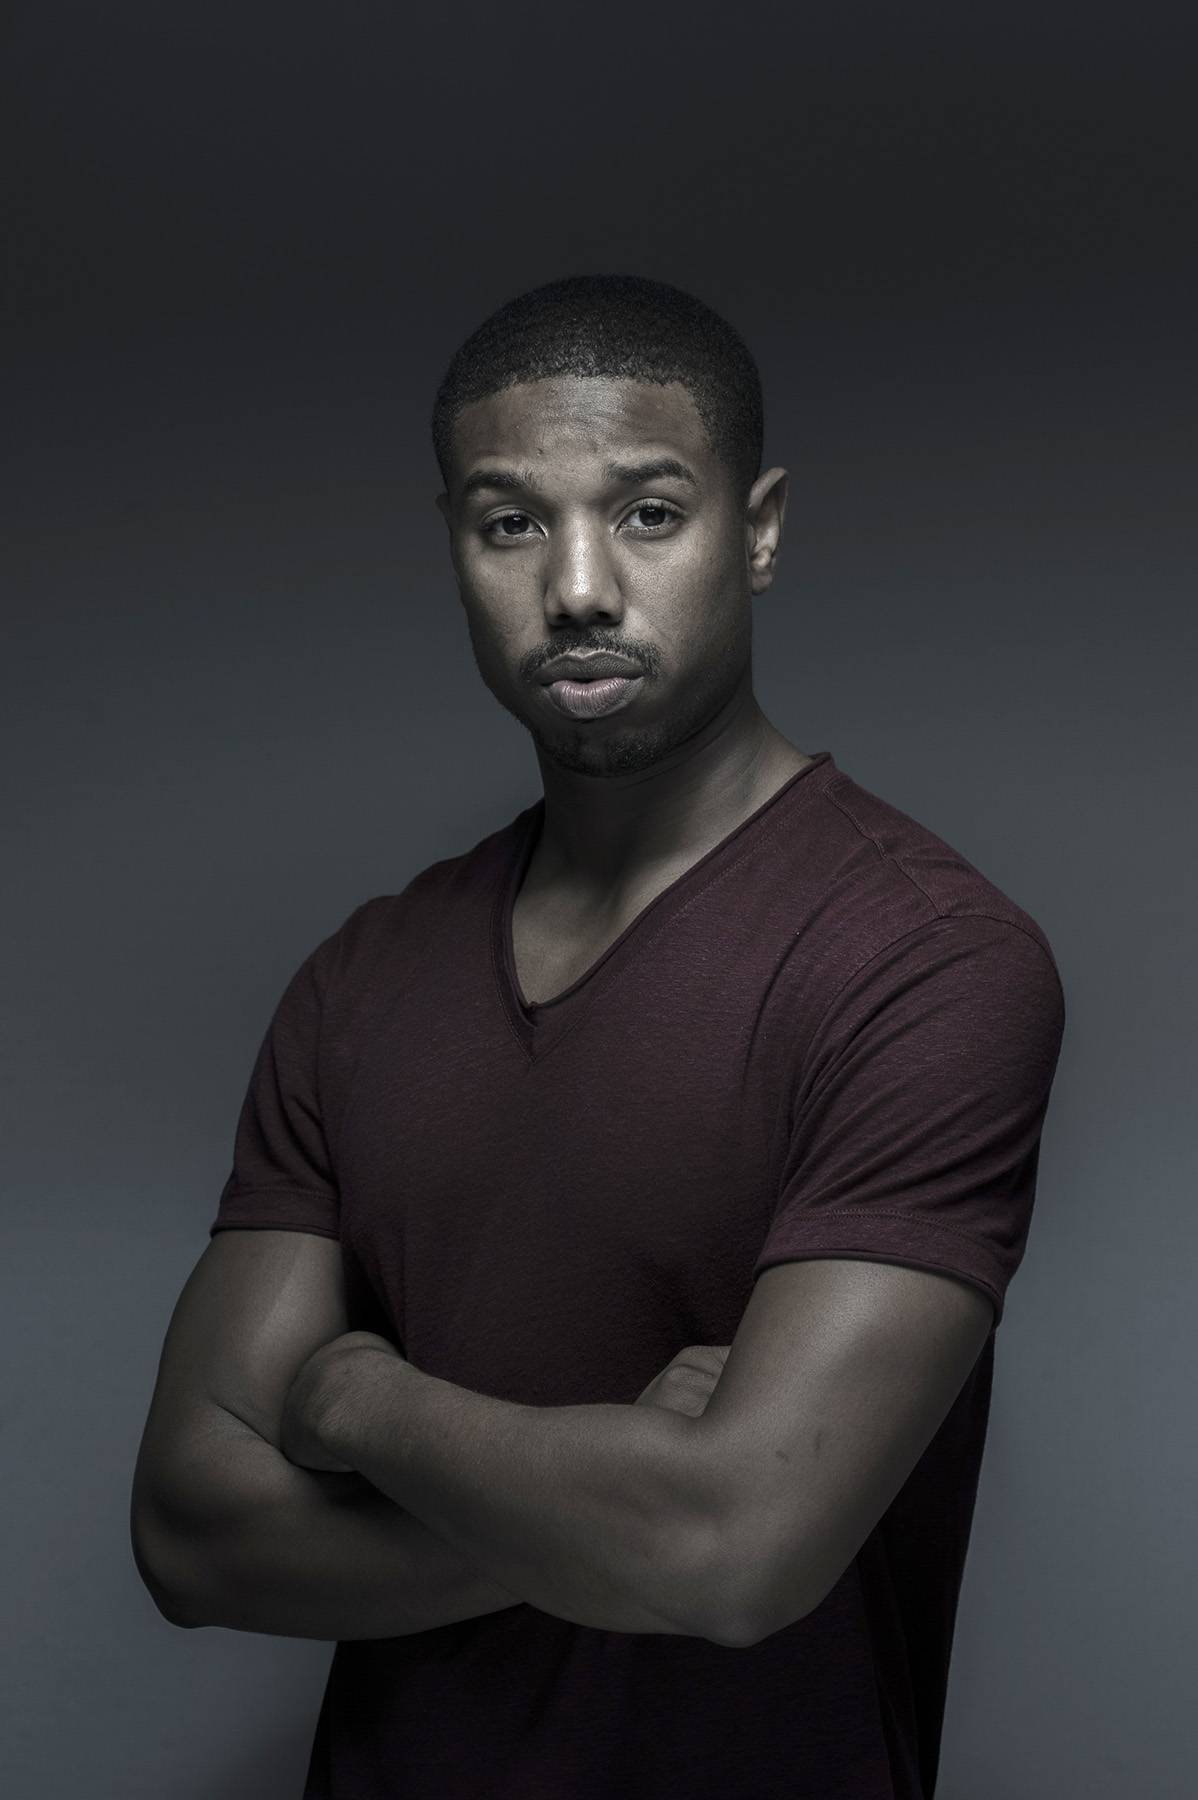 Michael B. Jordan's Serious Face - (Photo: Gareth Cattermole/Getty Images for DIFF)